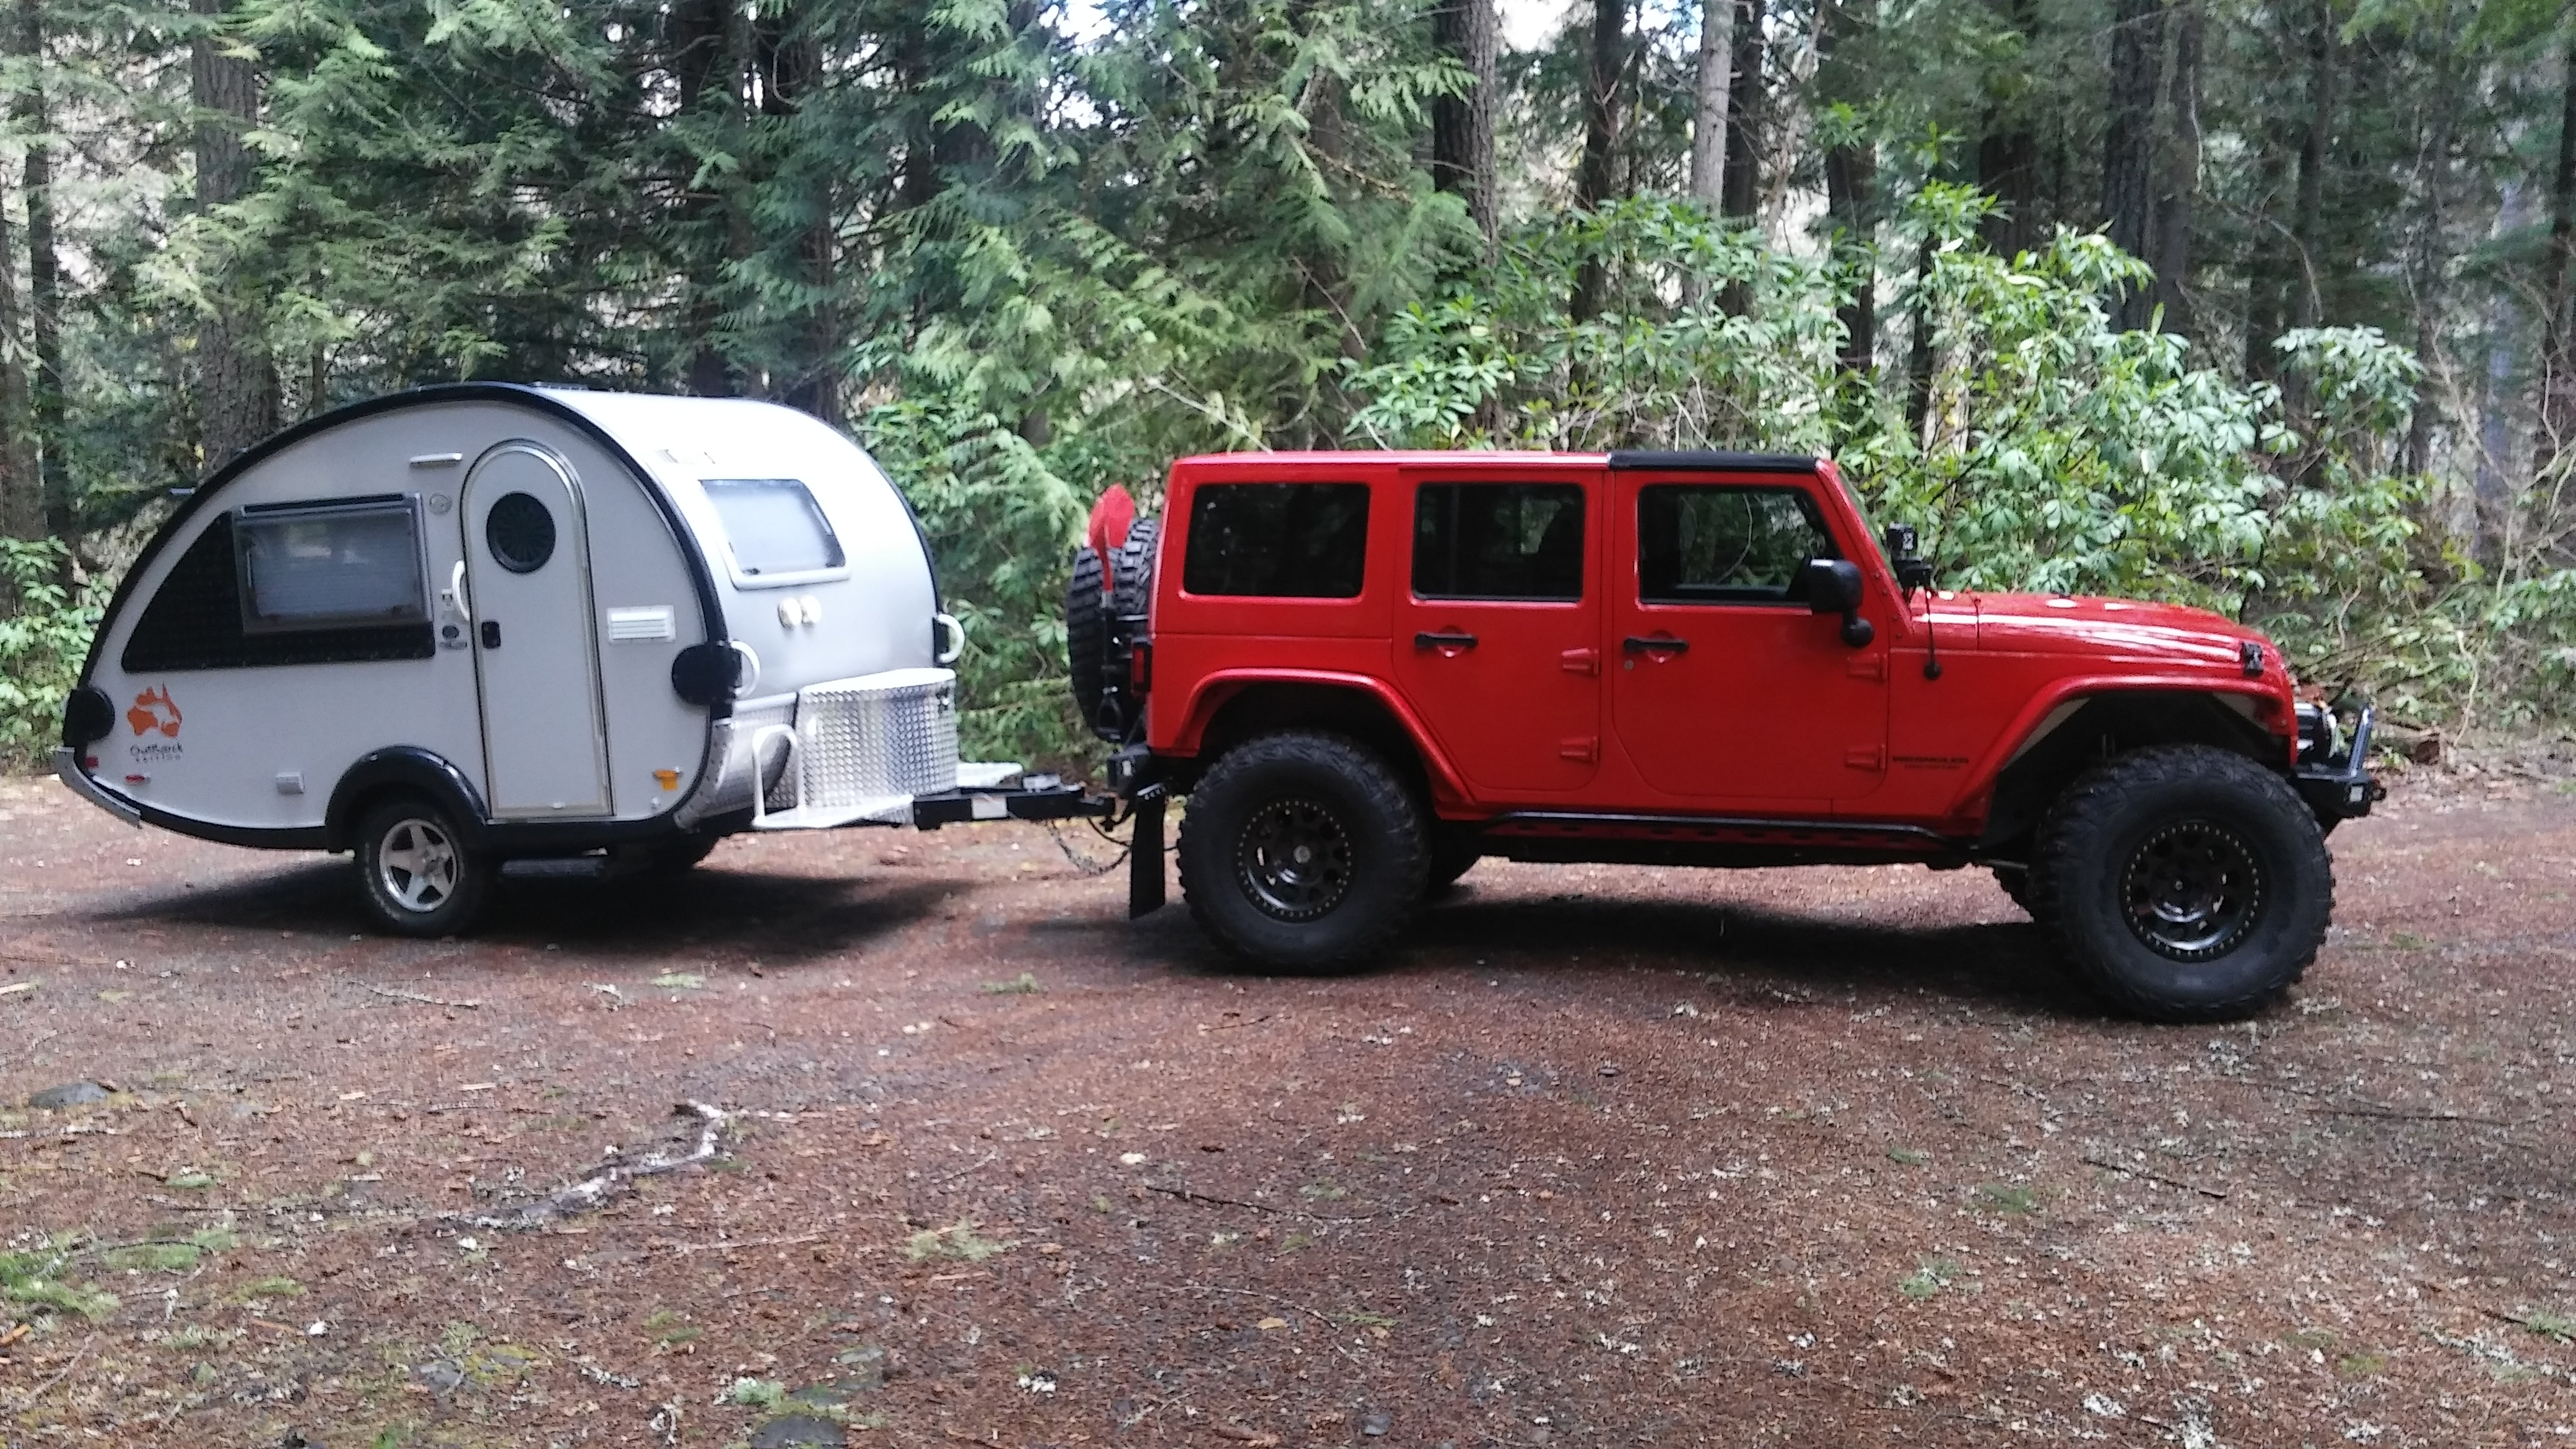 Jeep Wrangler Re Geared Supercharged And 1st 450 Mile Weekend Jk With 37 Inch Tires